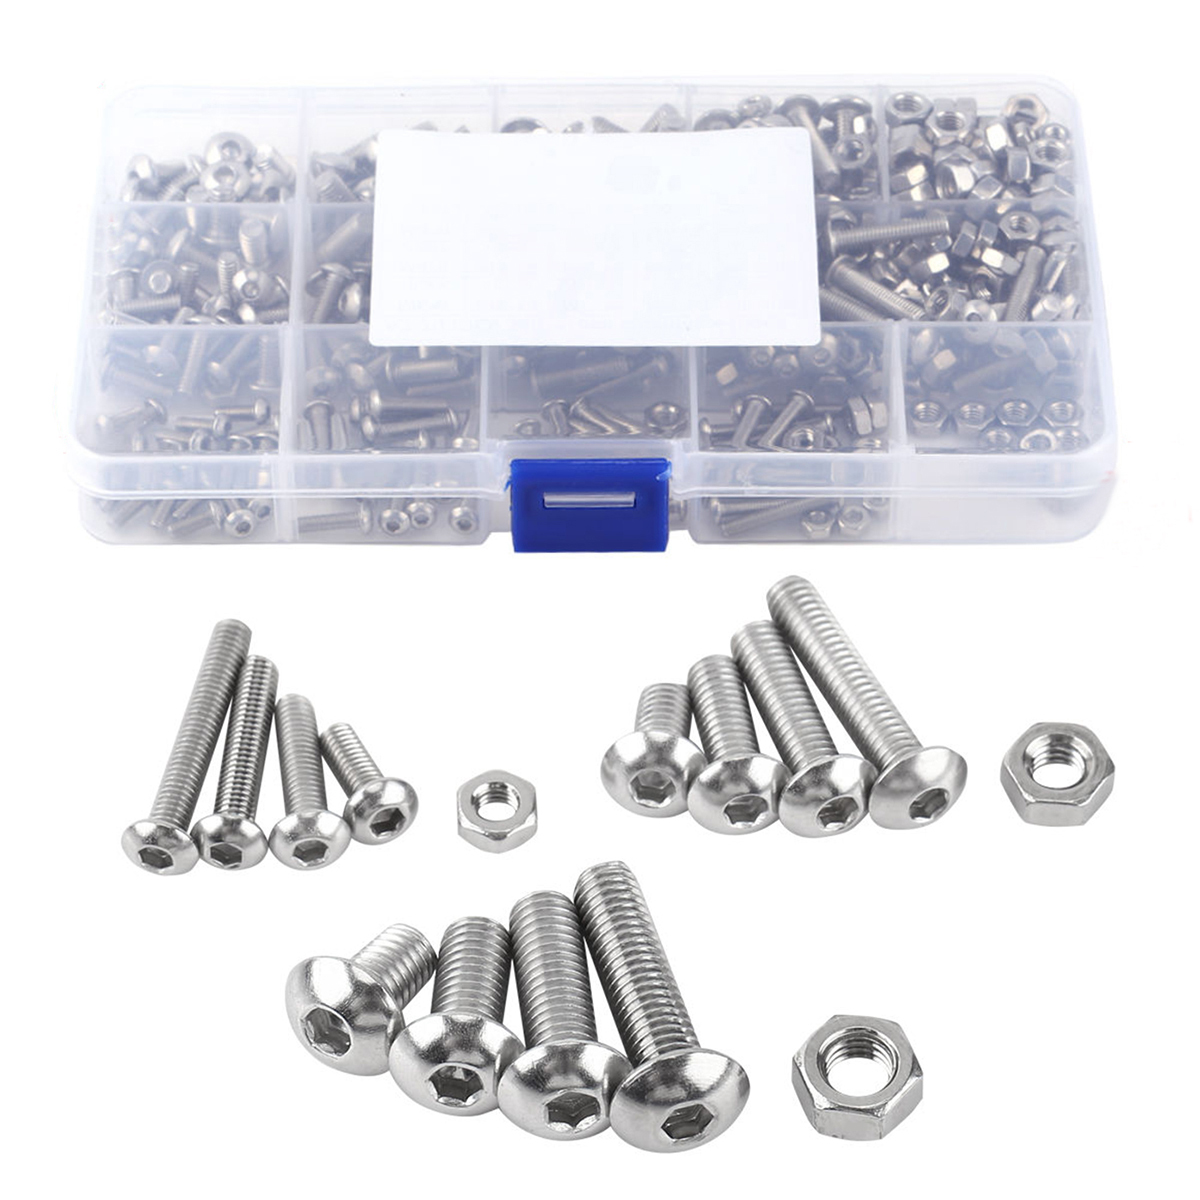 440pcs Mayitr M3 M4 M5 Hex Socket Screws Nuts Stainless Steel Button Head Bolts Assortment Kit Set m3 m4 m5 steel head screws bolts nuts hex socket head cap and nuts assortment button head allen bolts hexagon socket screws kit